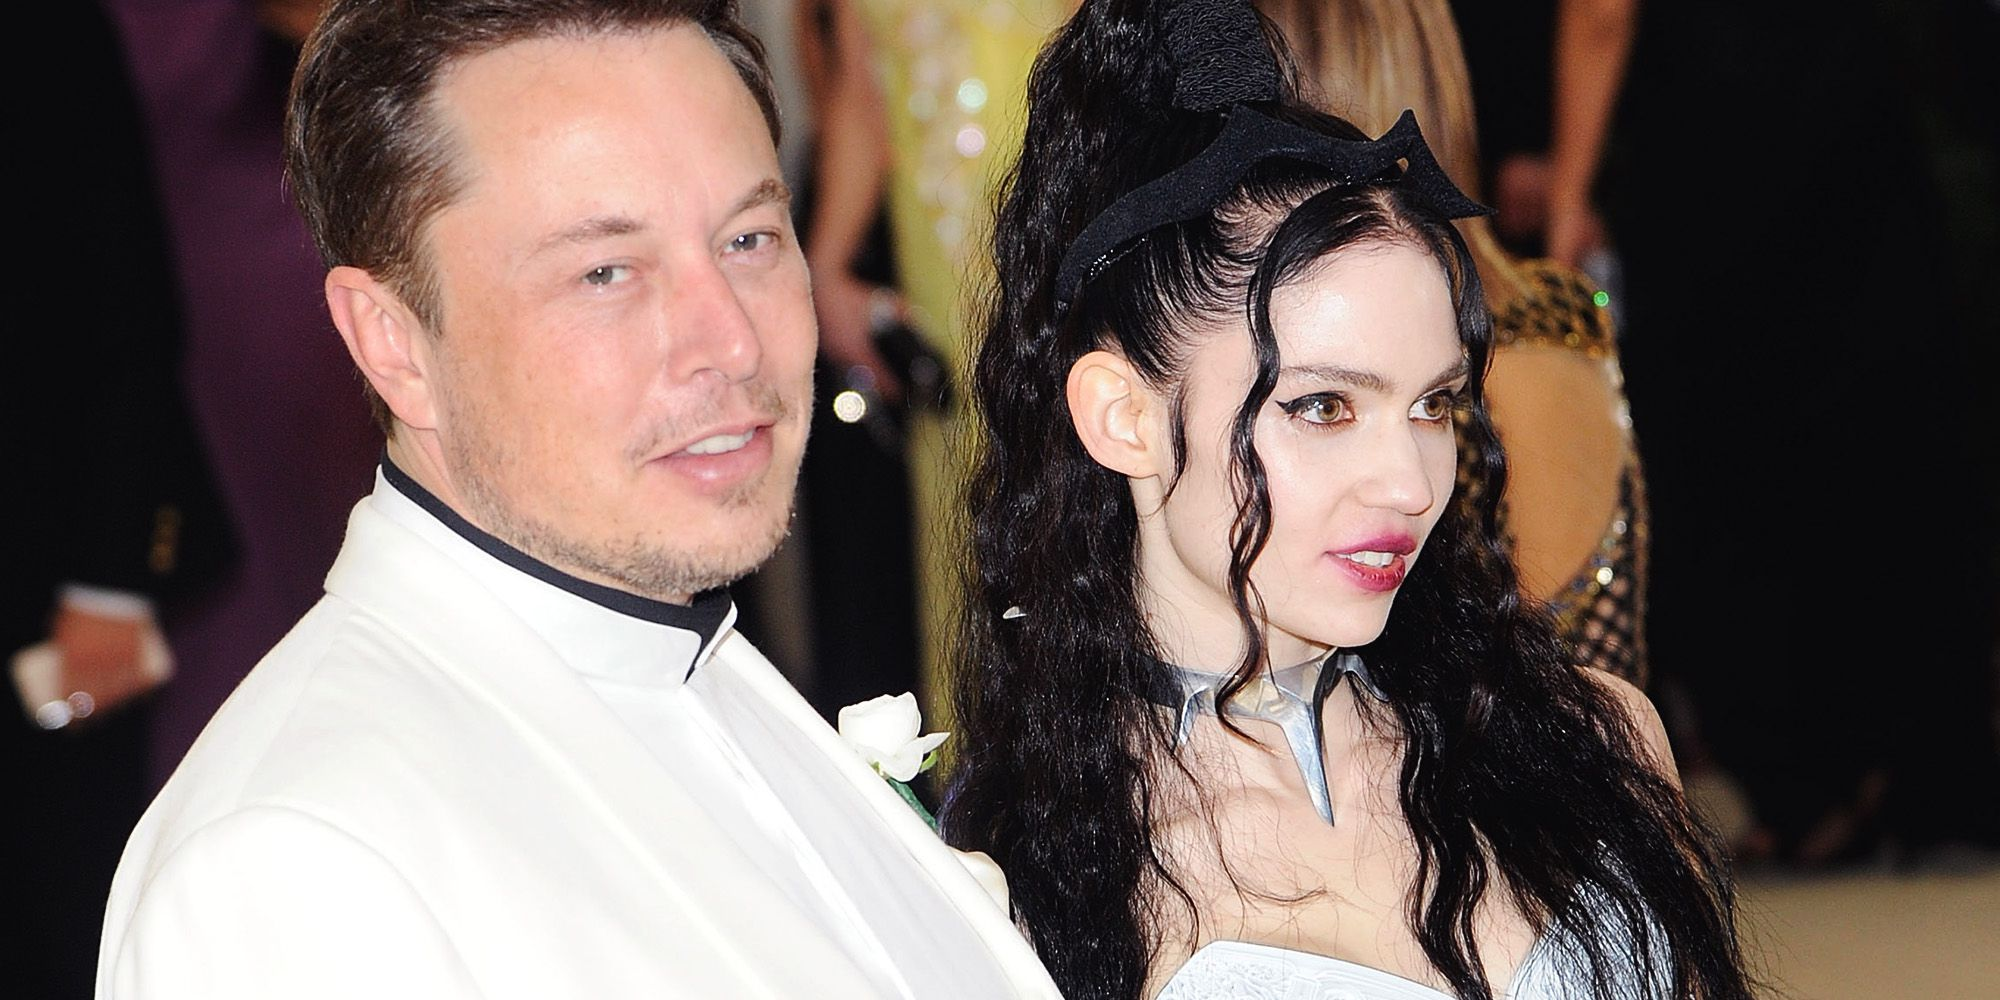 Grimes is being dragged into Elon Musk's securities fraud